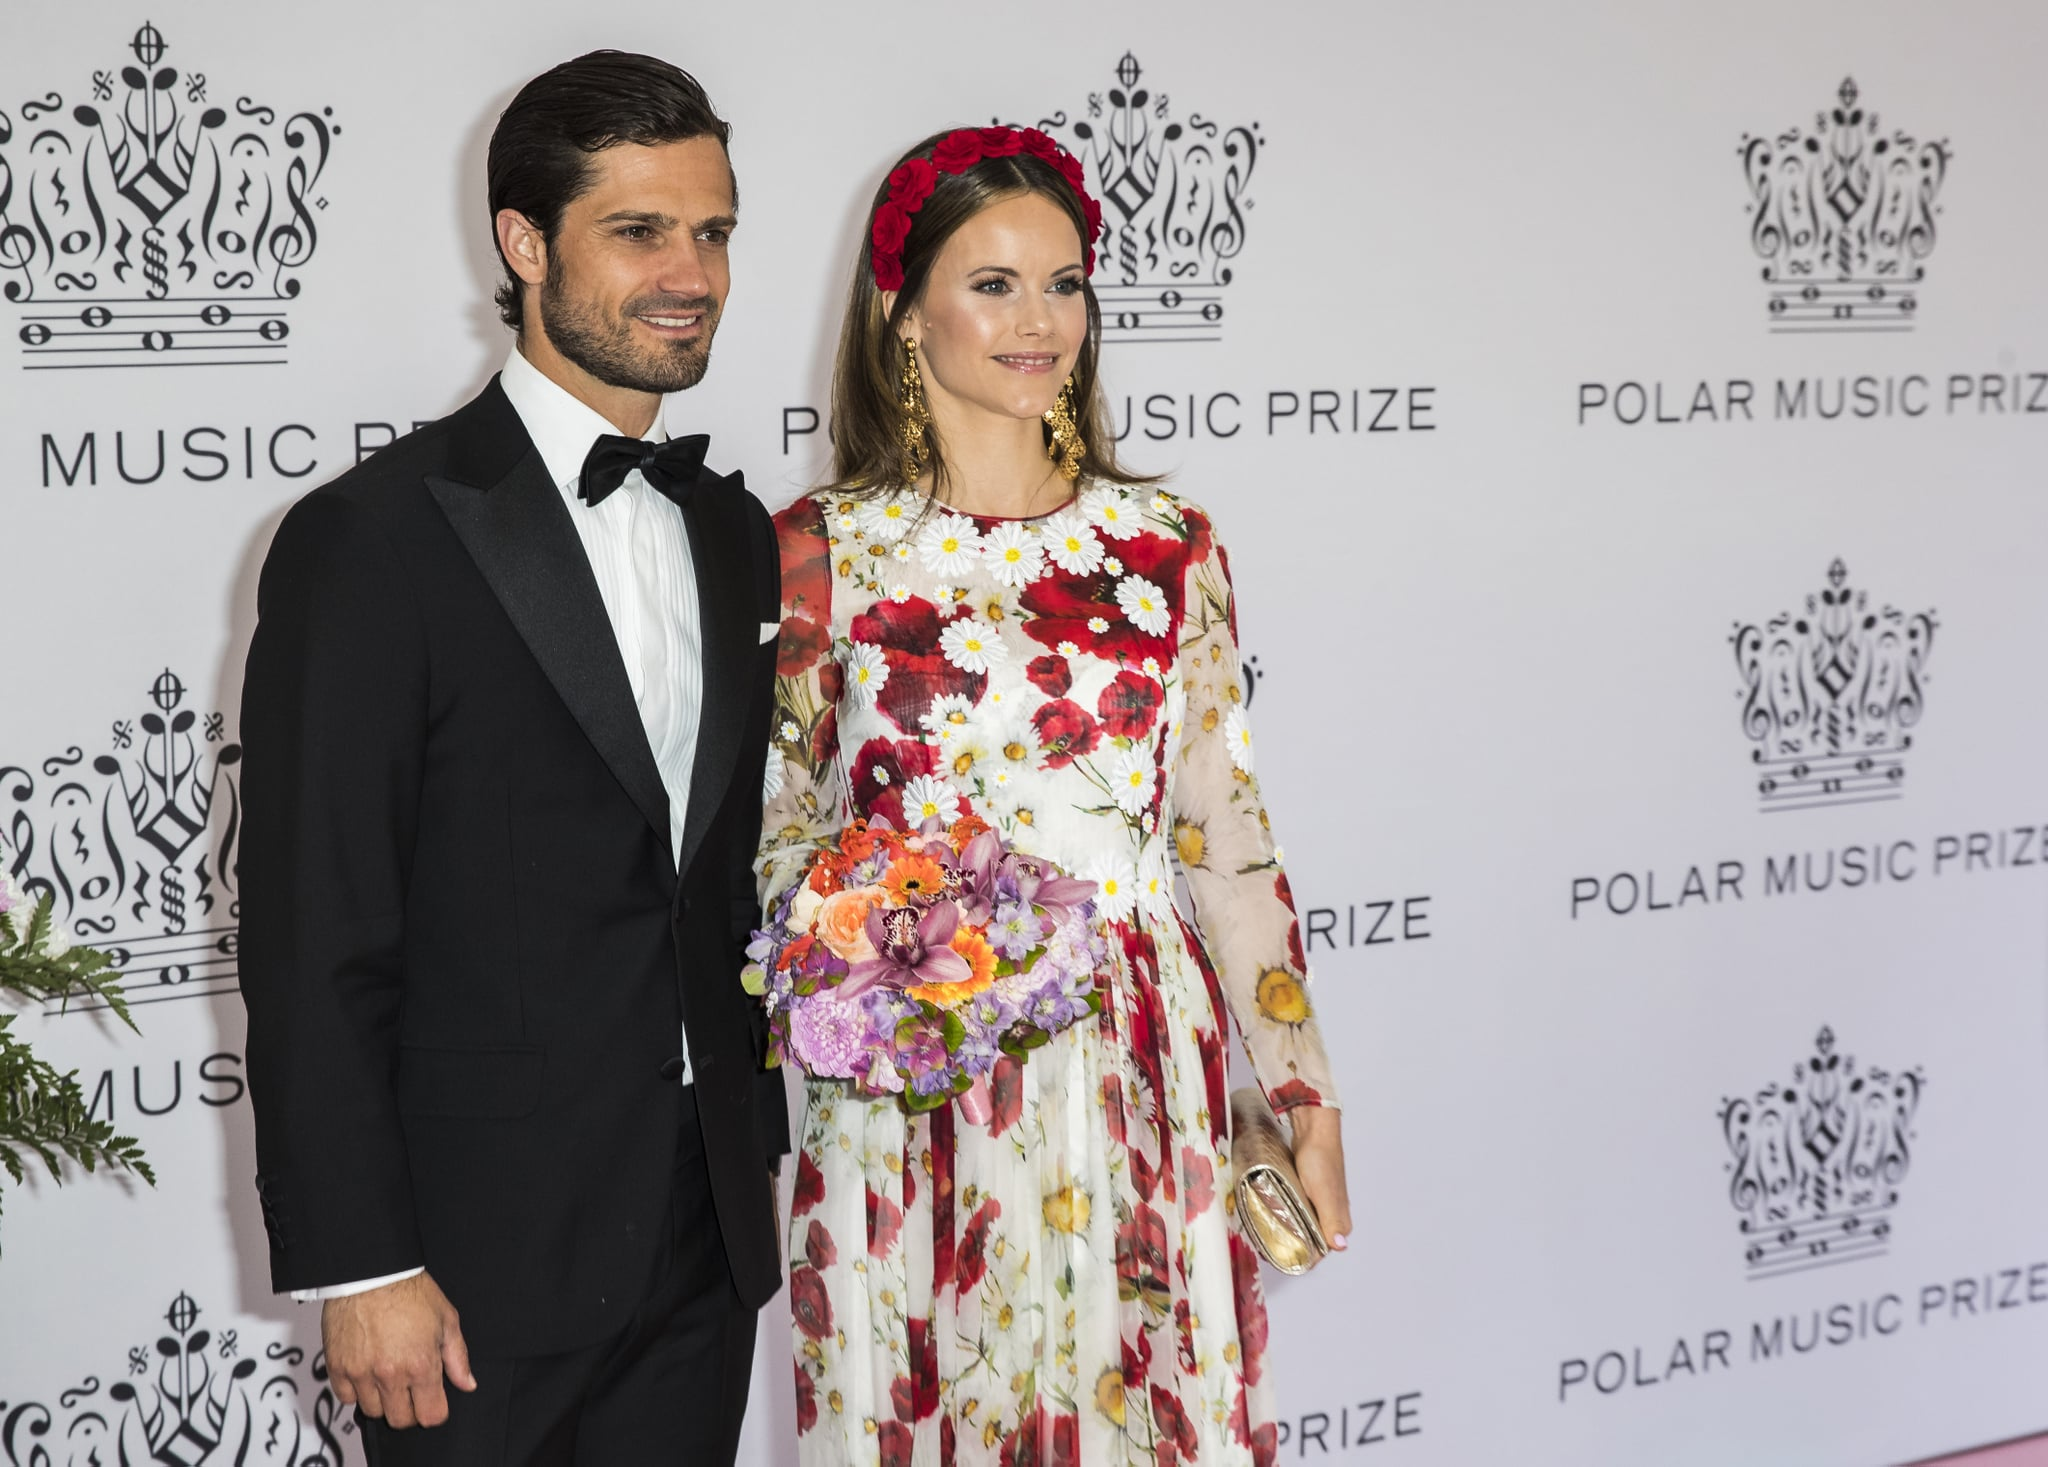 STOCKHOLM, SWEDEN - JUNE 11: Prince Carl Philip of Sweden and Princess Sofia of Sweden pose on the red carpet during the 2019 Polar Music Prize award ceremony  on June 11, 2019 in Stockholm, Sweden. (Photo by Michael Campanella/Getty Images)